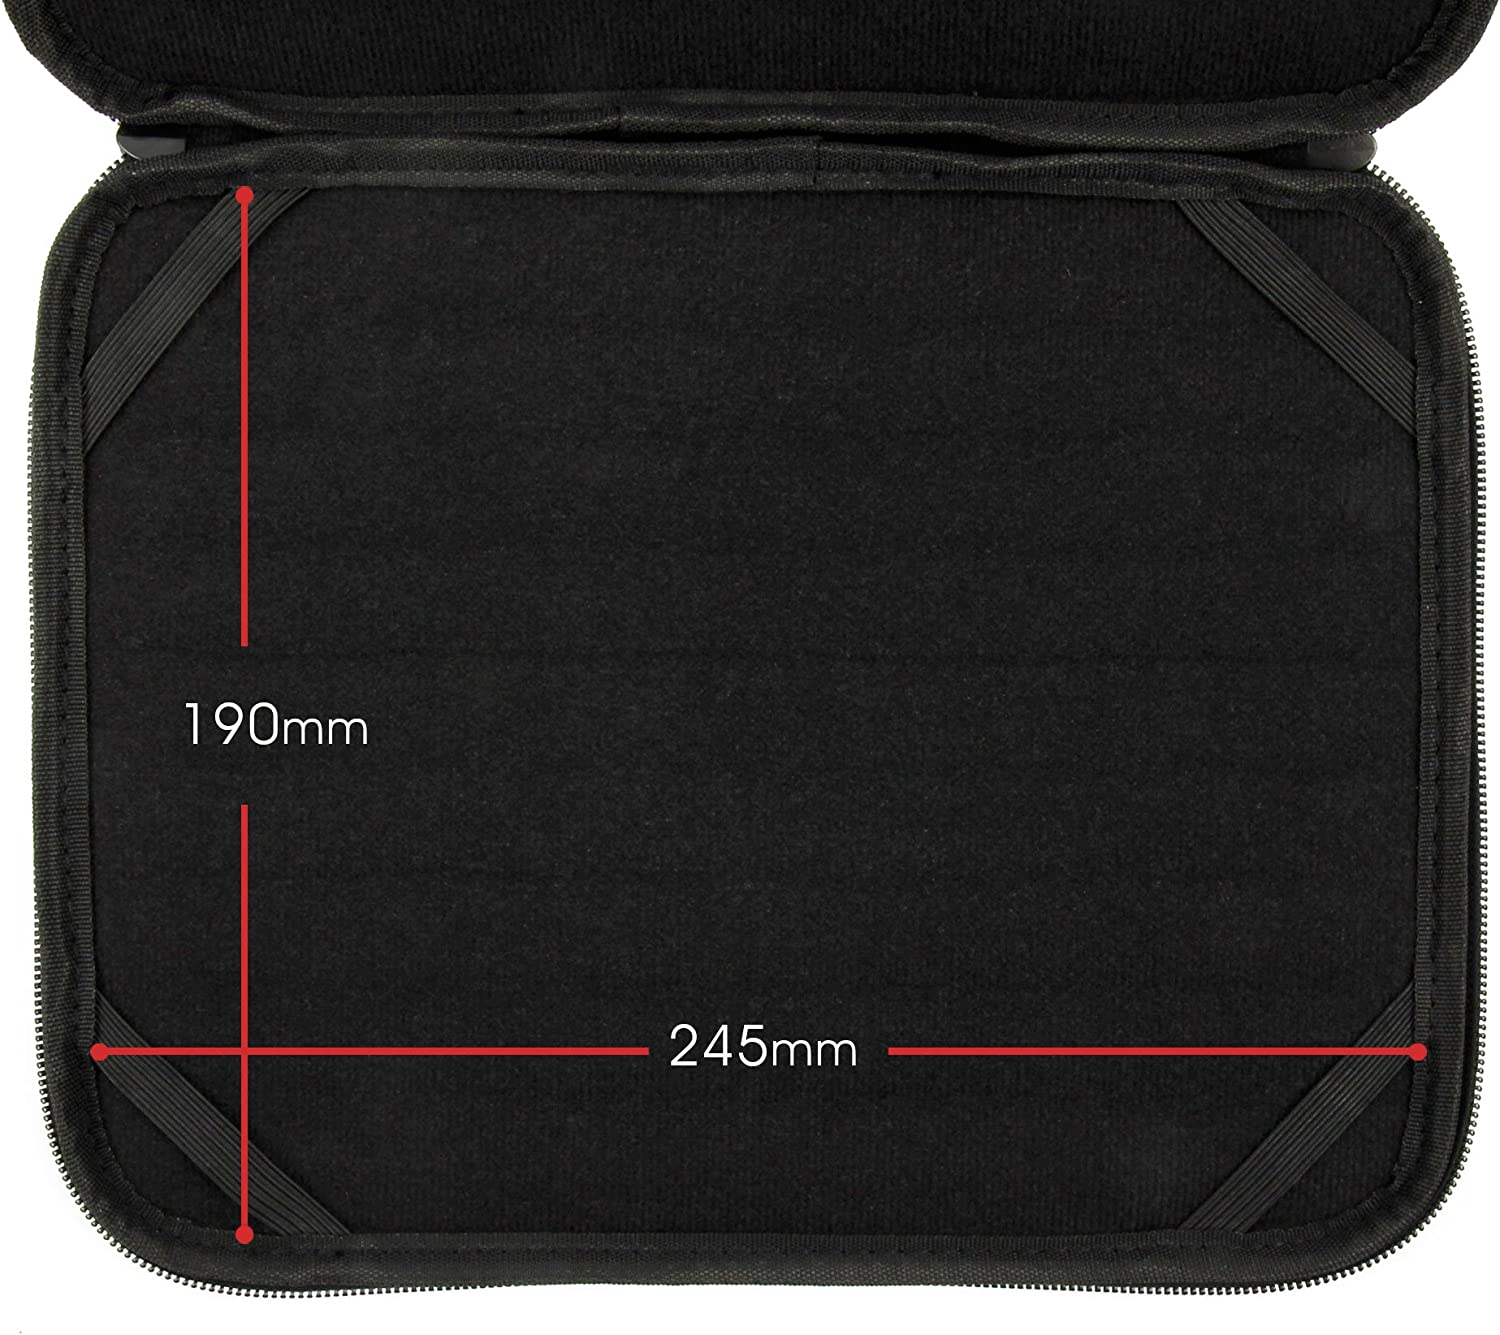 DURAGADGET Black Water /& Impact Resistant Memory Foam Notebook Carry Case Compatible with 10.1 Inch Netbooks